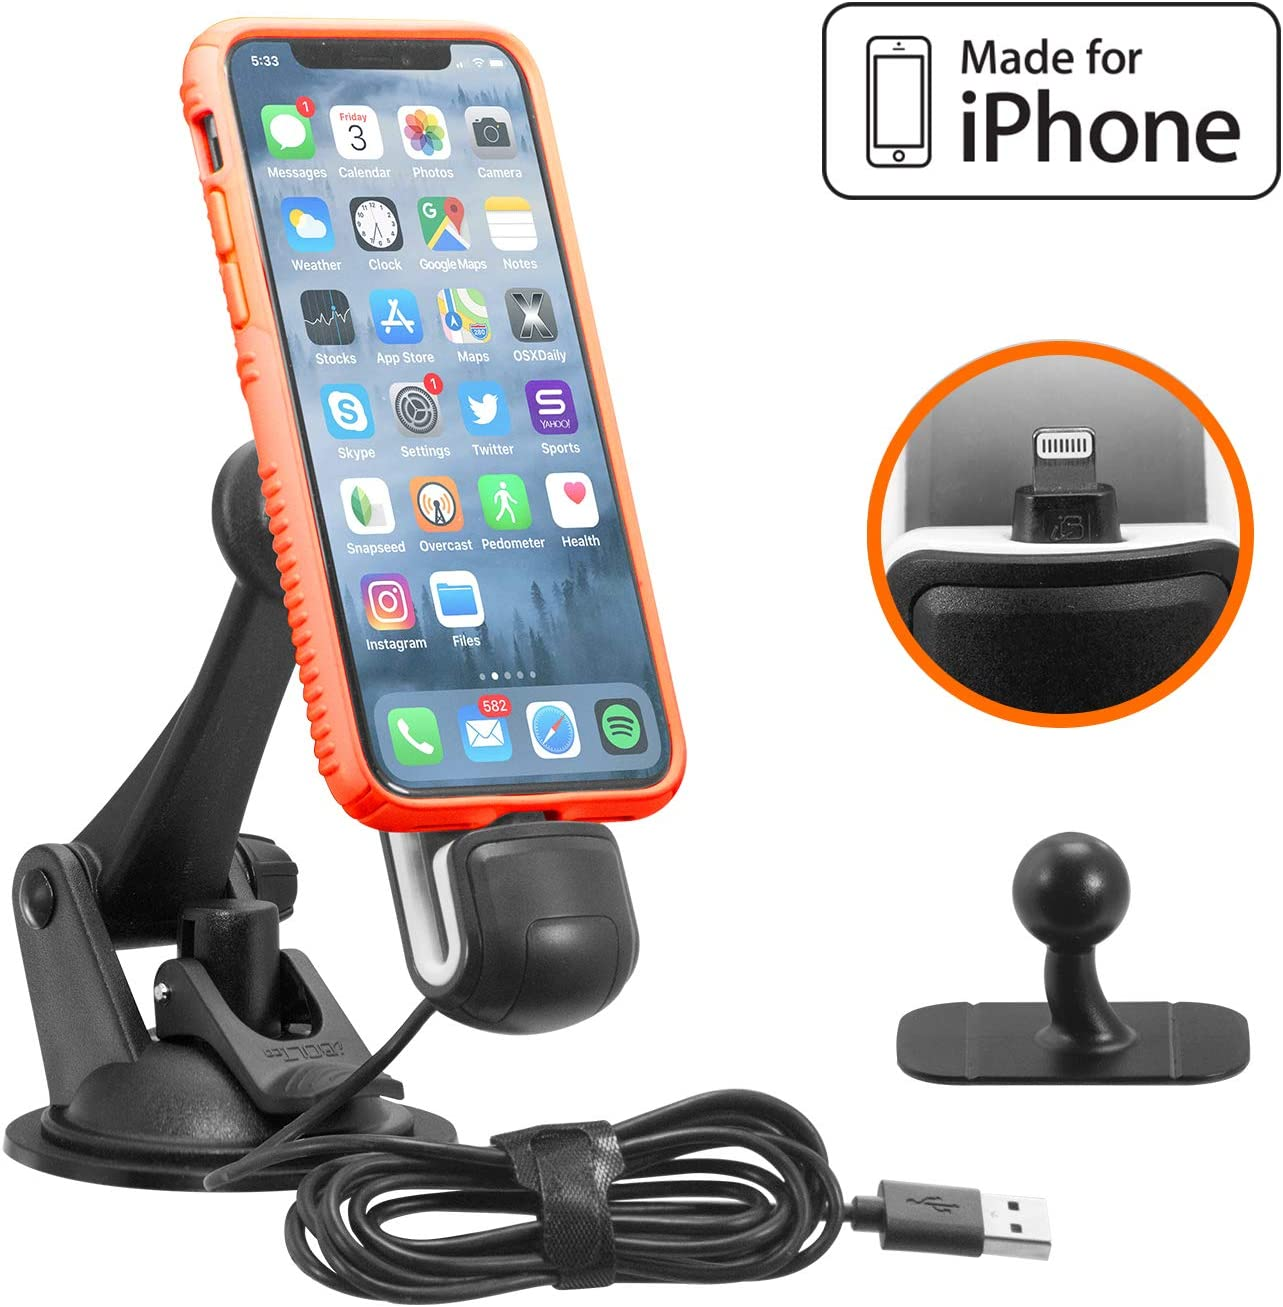 Apple MFI Certified ChargeDock- Magnetic Vehicle/Desktop Dock/Mount w/ 2 mounting Options. Works w/Most Phone and case Combinations (iPhone Xs/Xs Max/X / 8/8 Plus / 7/7 Plus / 6)